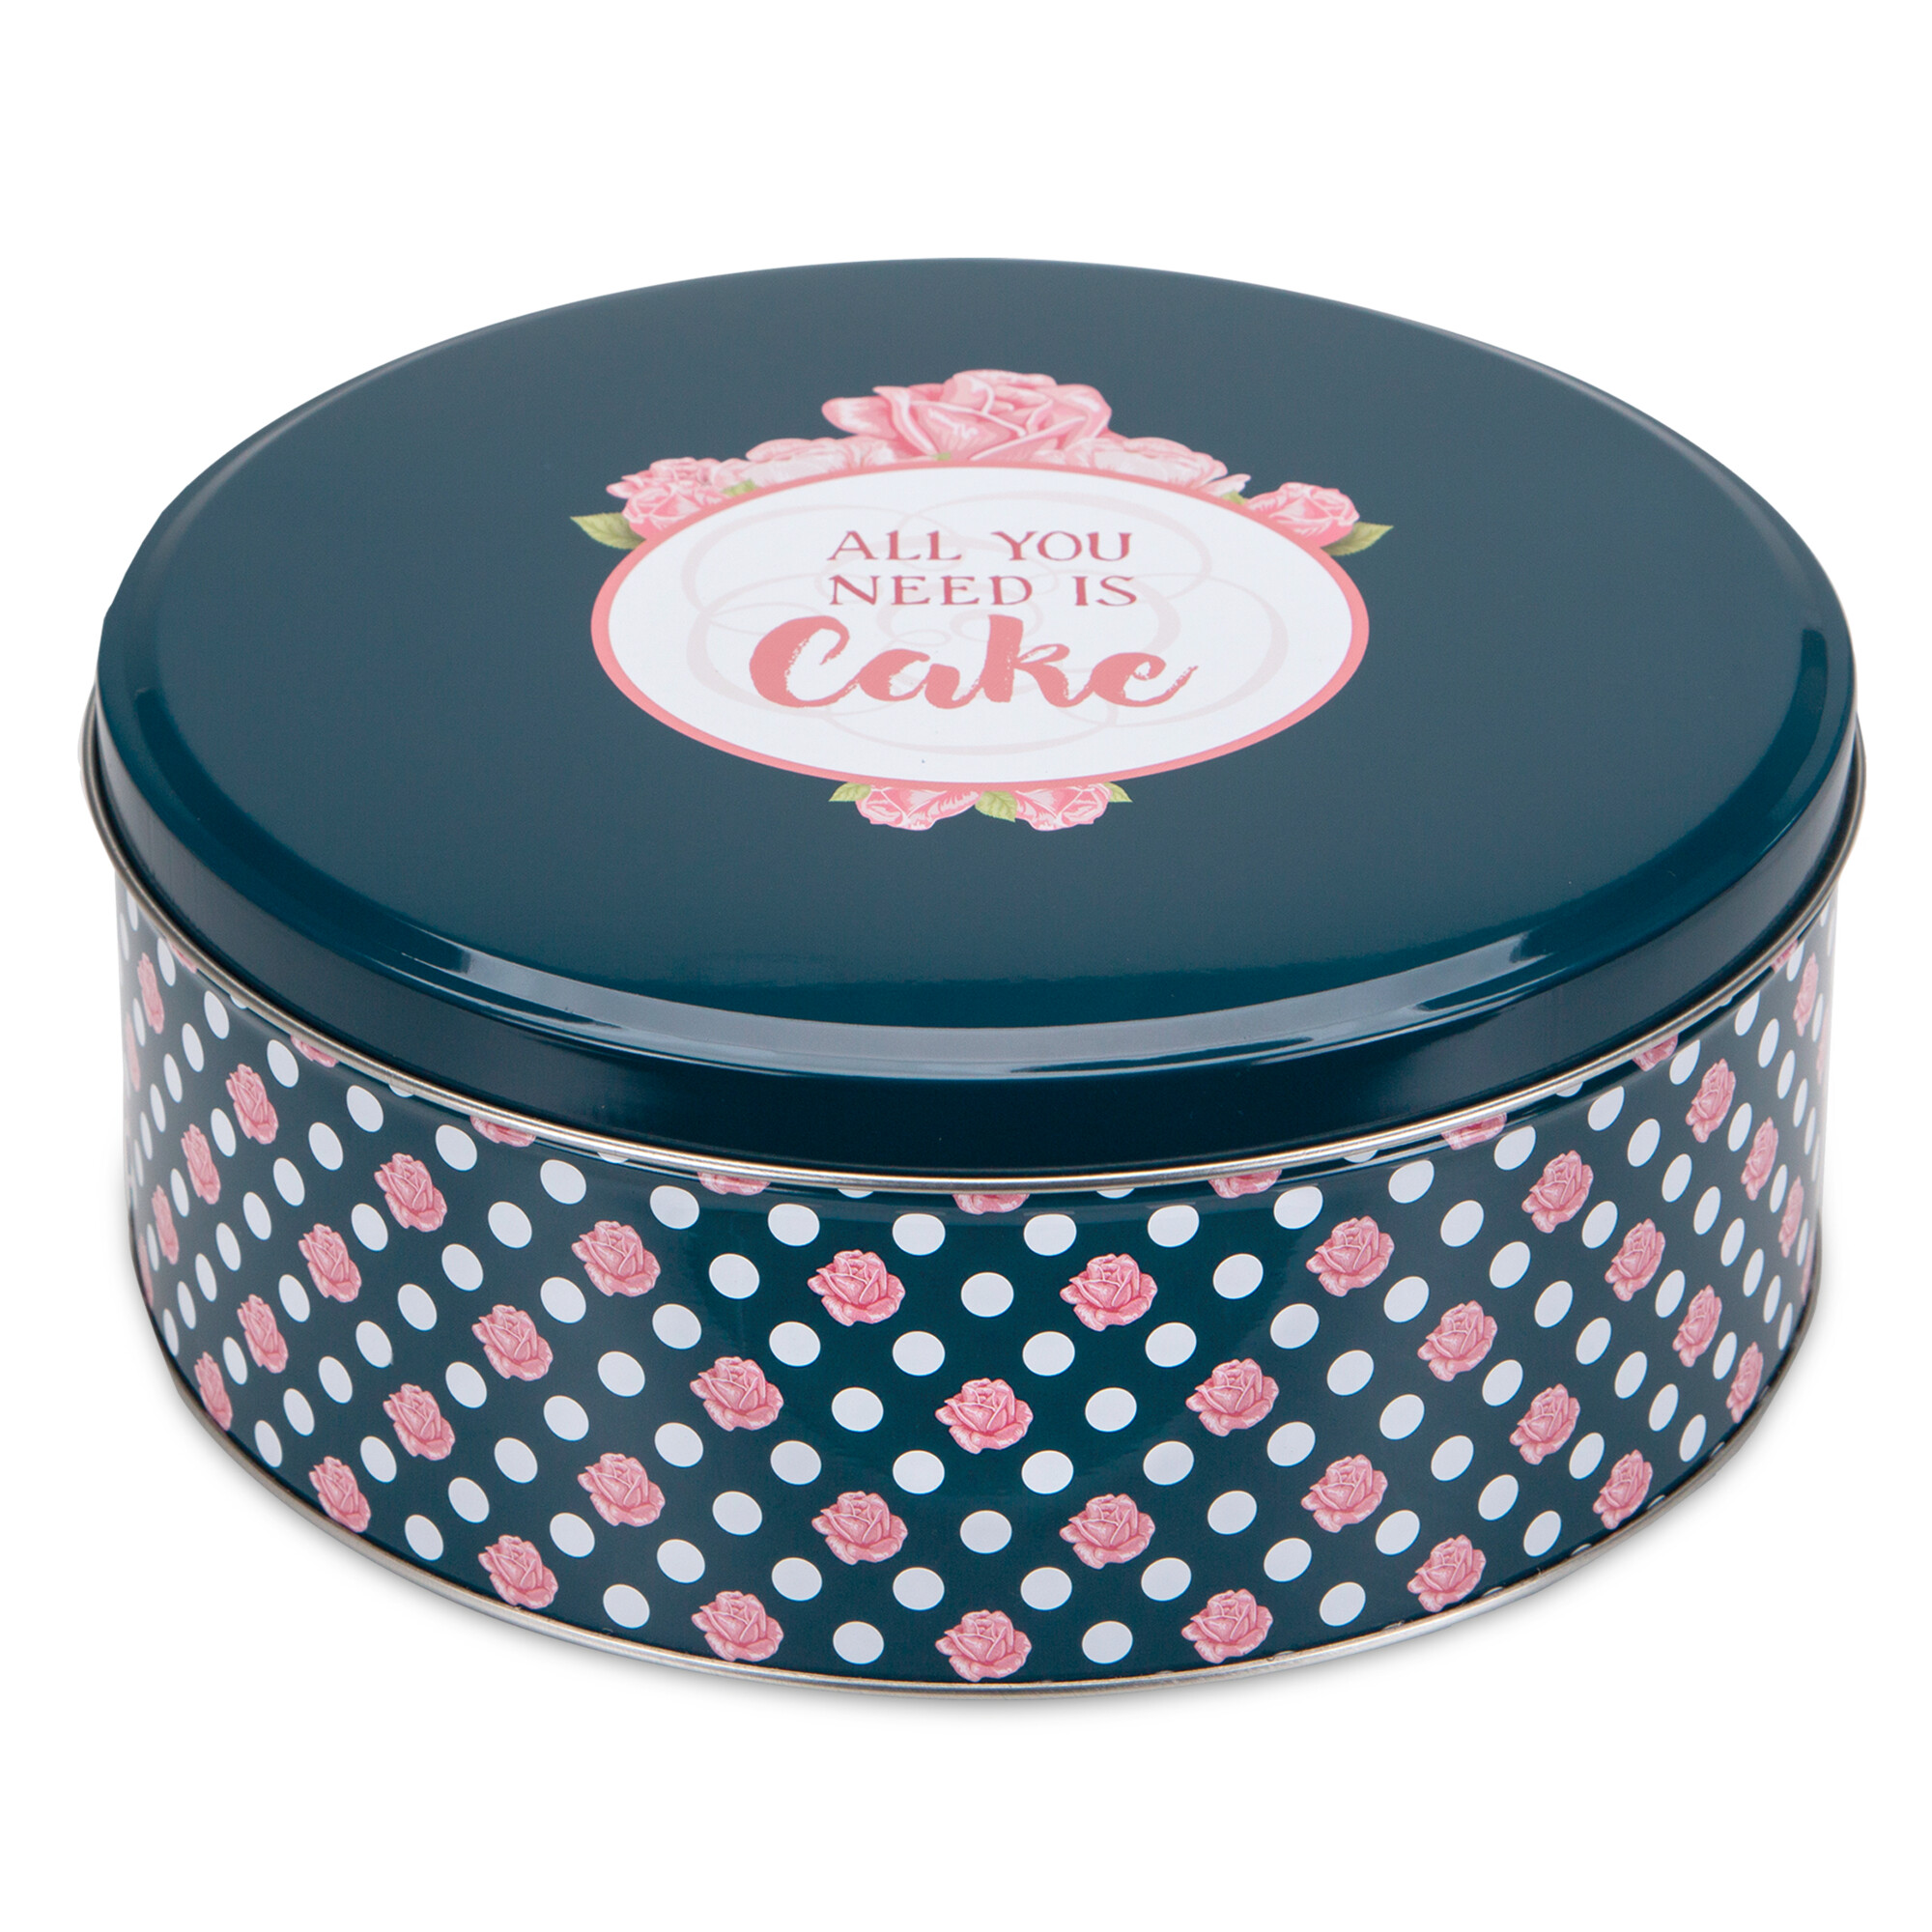 """Gebäckdose """"All you need is Cake"""""""